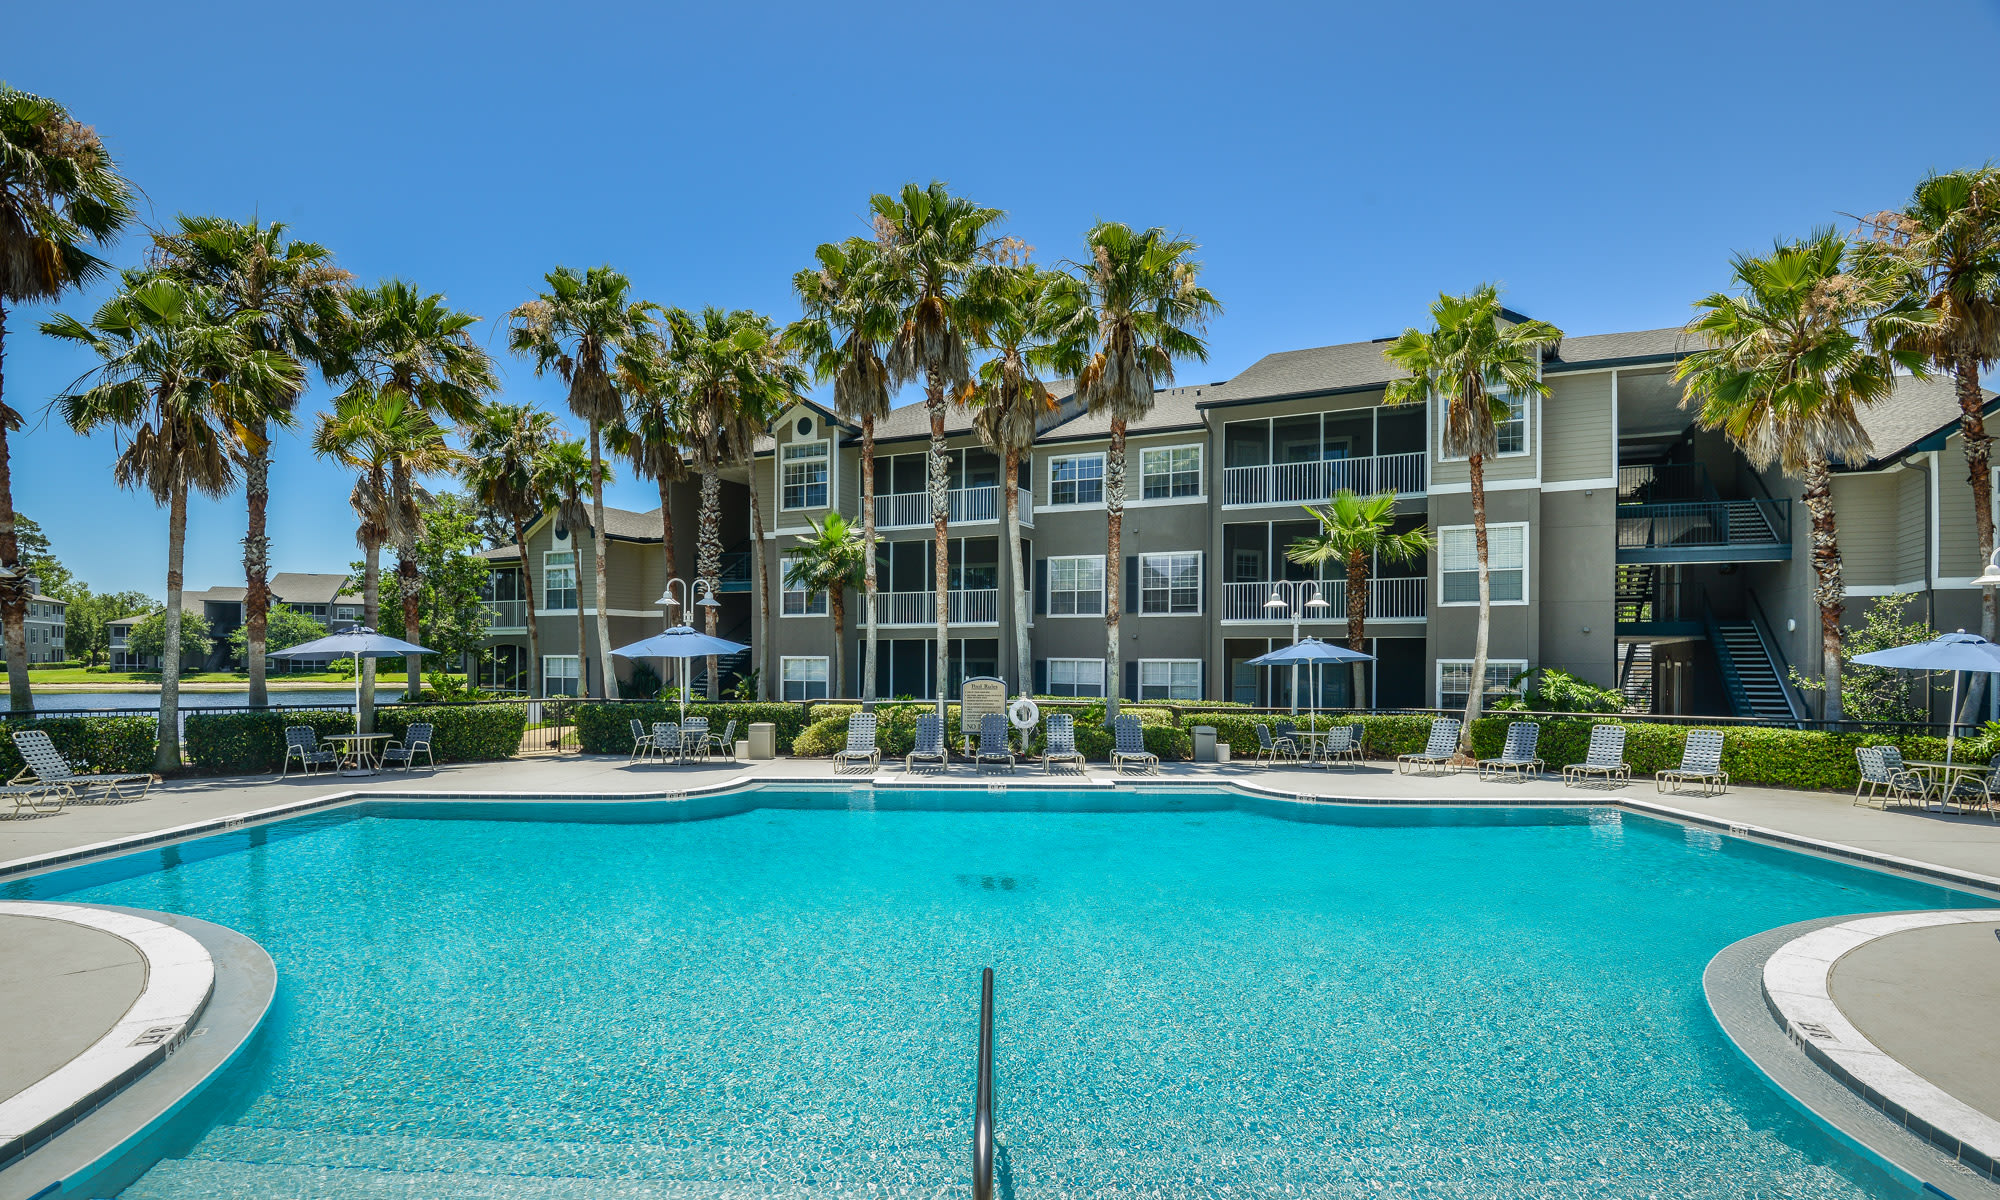 jacksonville beach fl apartments for rent ocean park of ponte vedra